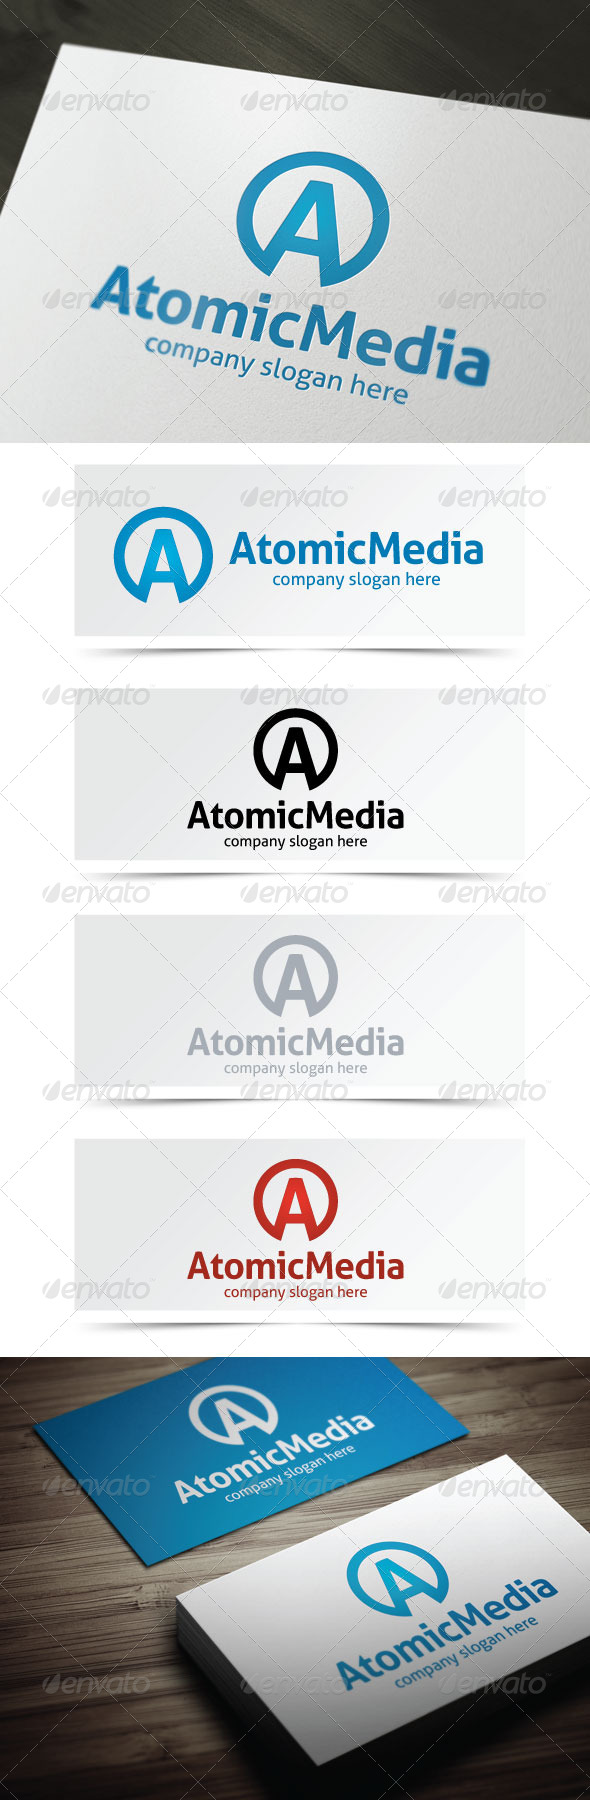 Atomic Media - Letters Logo Templates